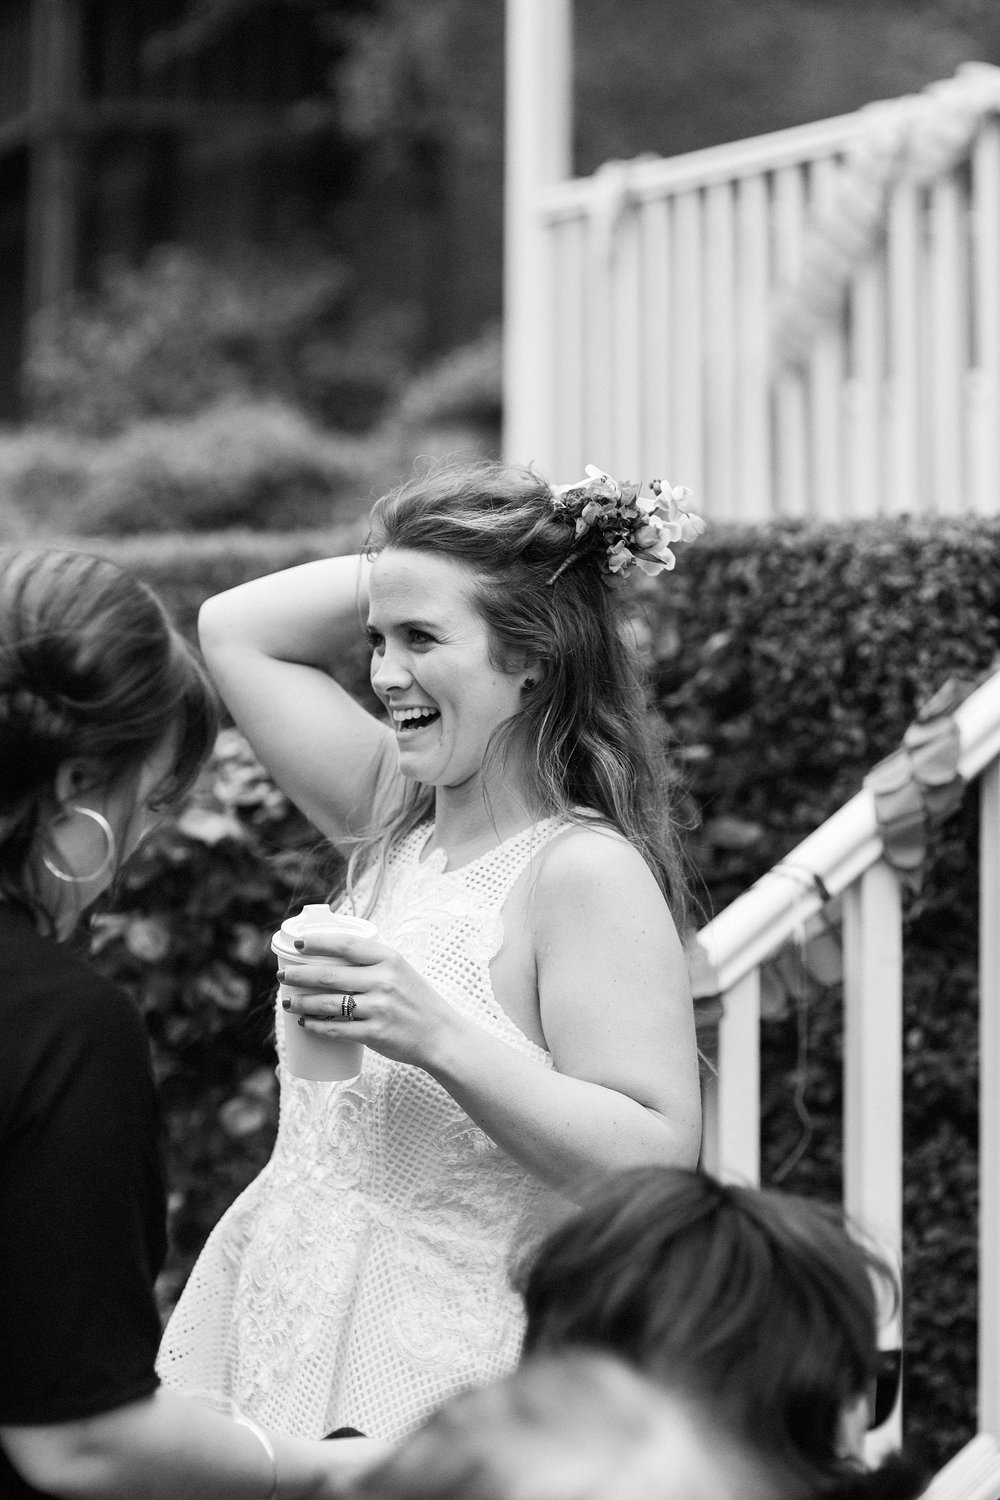 melbourne_wedding_photography_0066-min.jpg